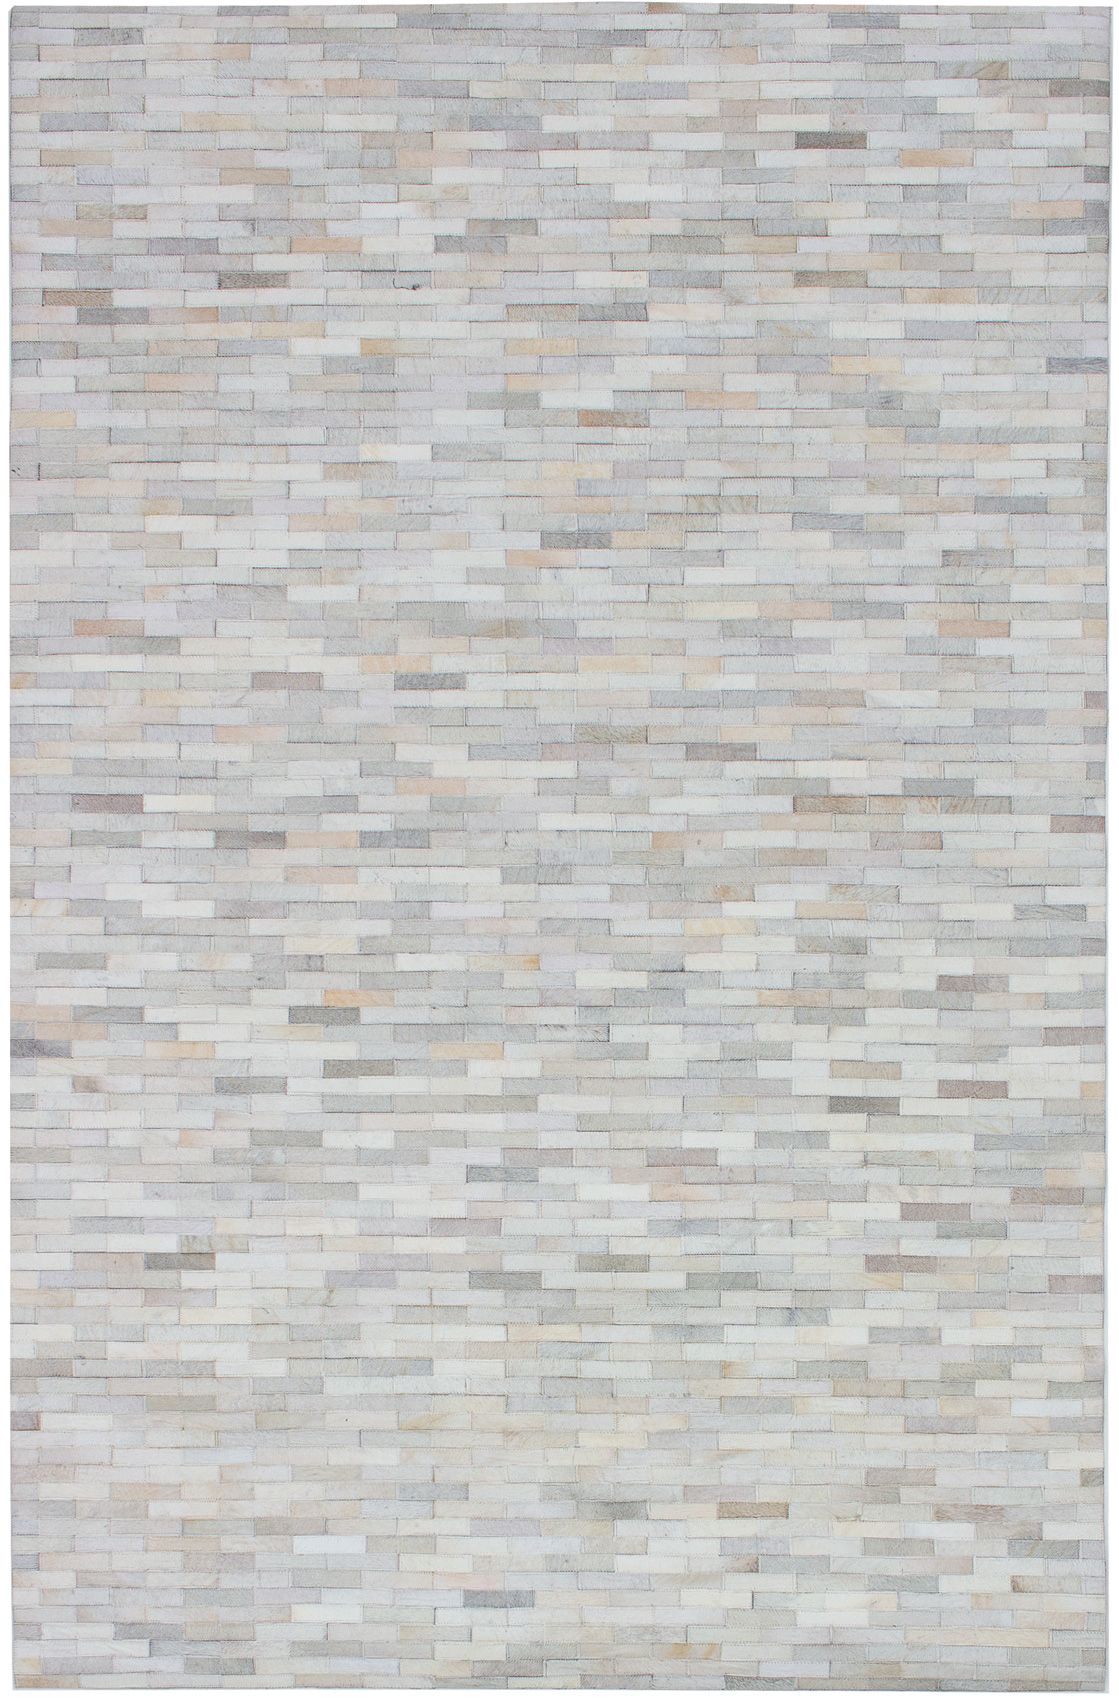 """Handmade Cowhide Patchwork Ivory Leather Rug 5'1"""" x 7'11"""" Size: 5'1"""" x 7'11"""""""